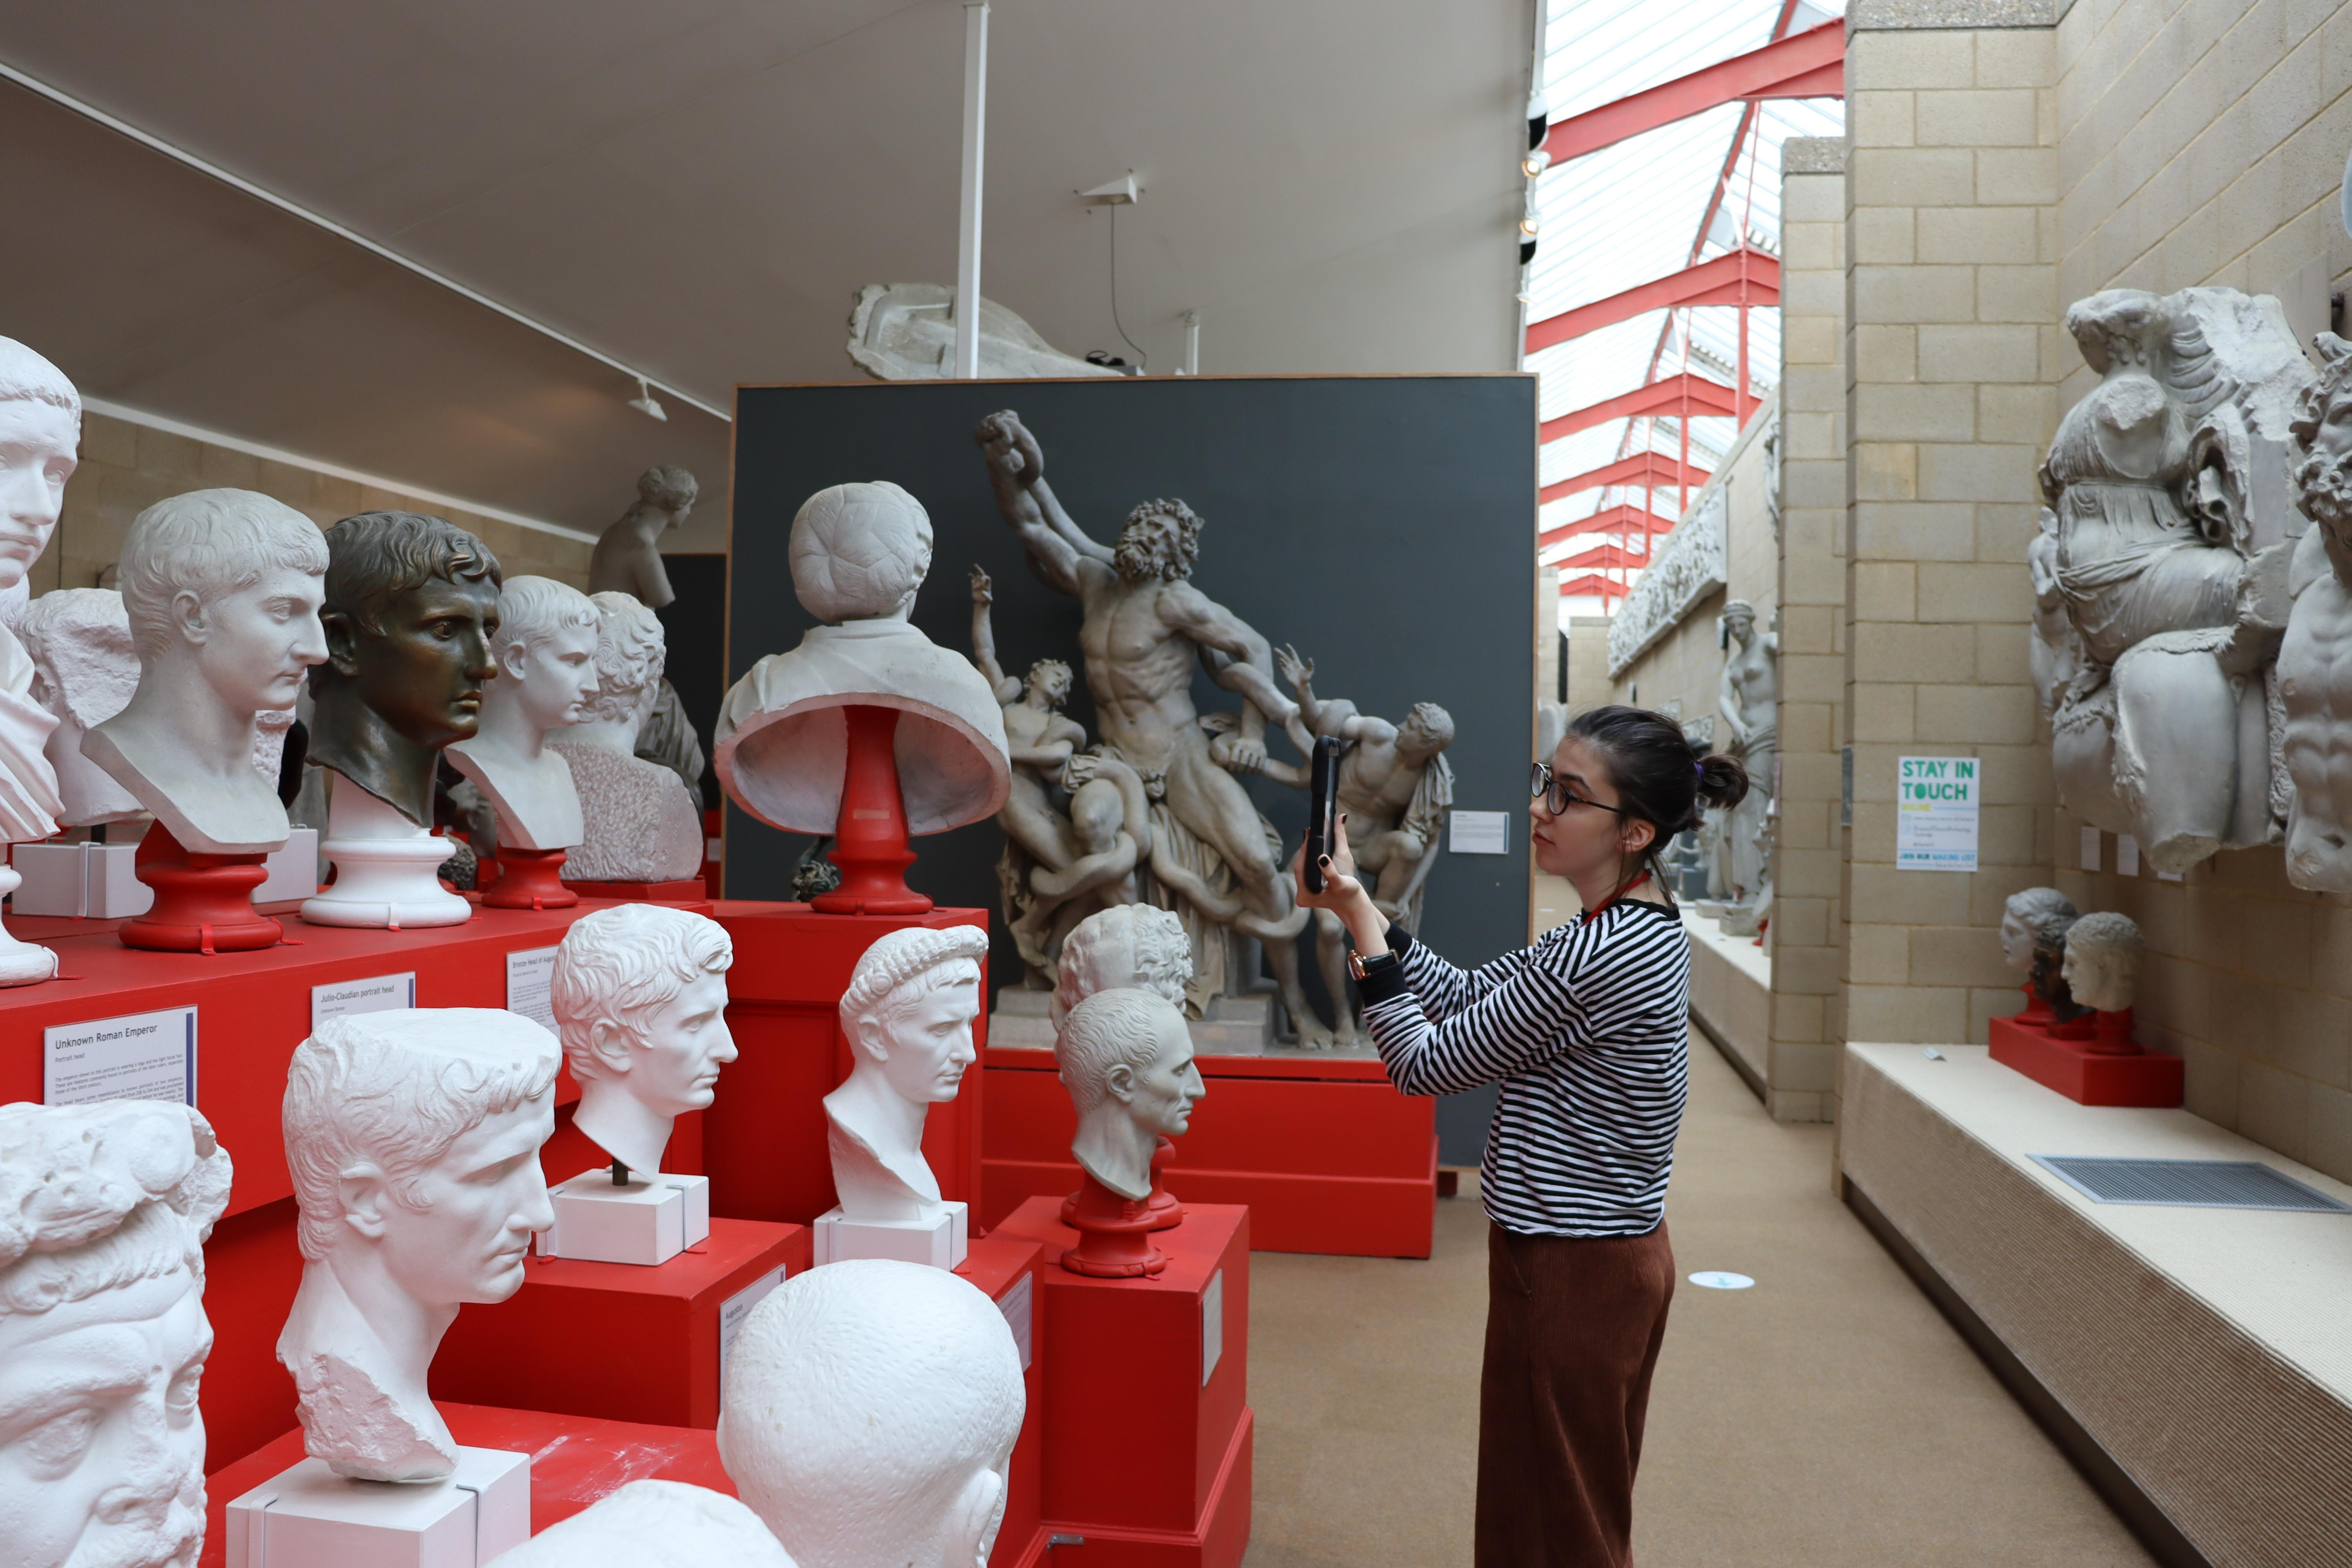 Justyna holding an iPad. busts of roman emperors on the left. Laocoon in the background.